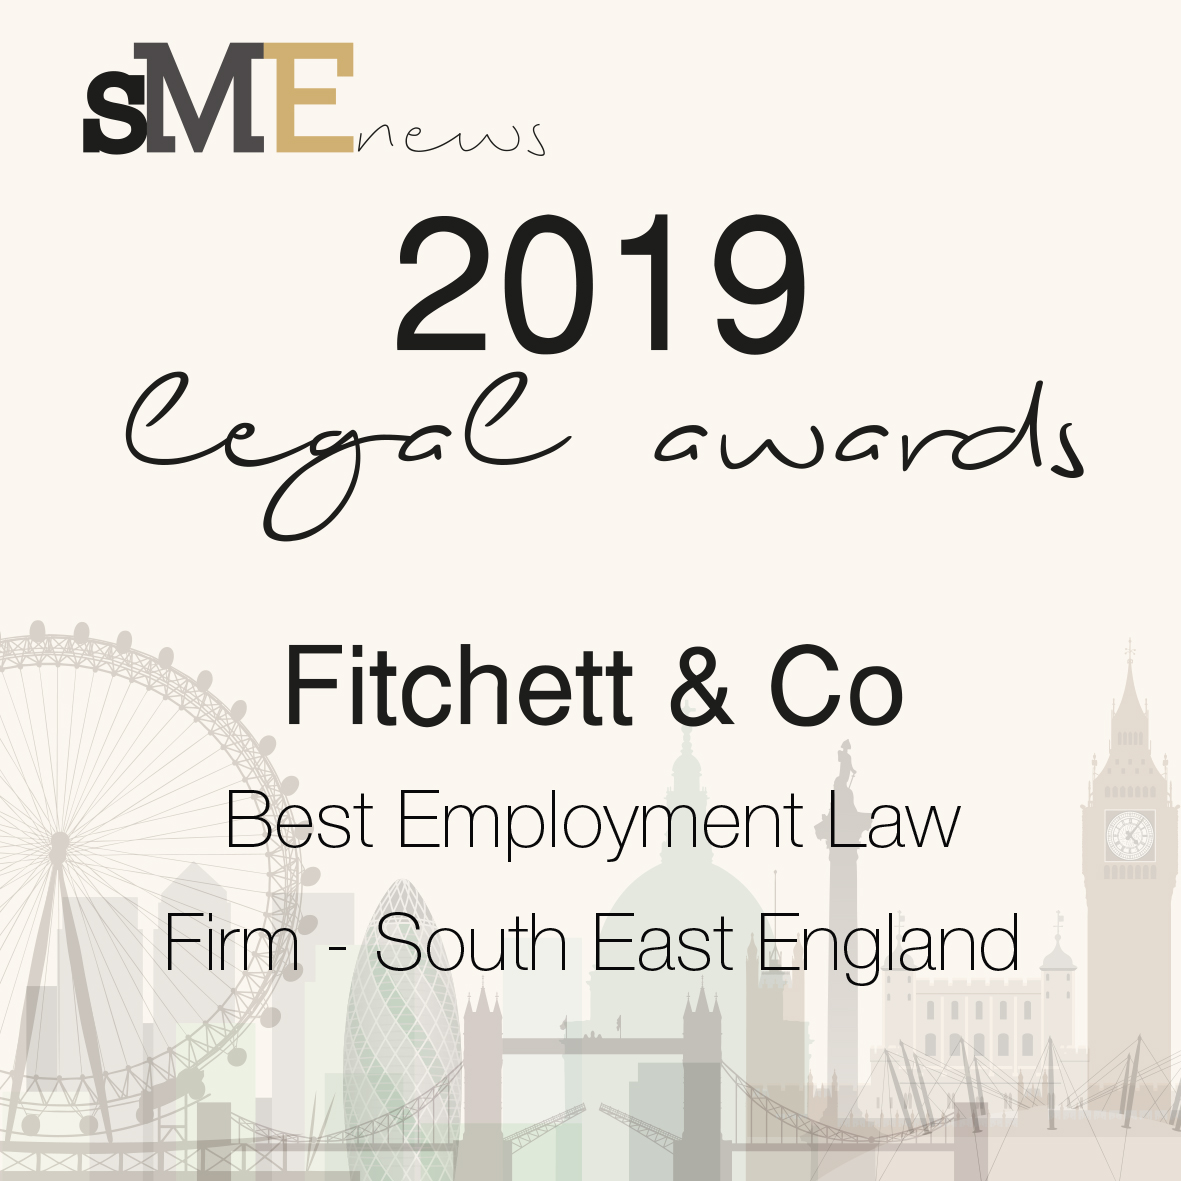 Awards - Best Employment Solicitors Firm